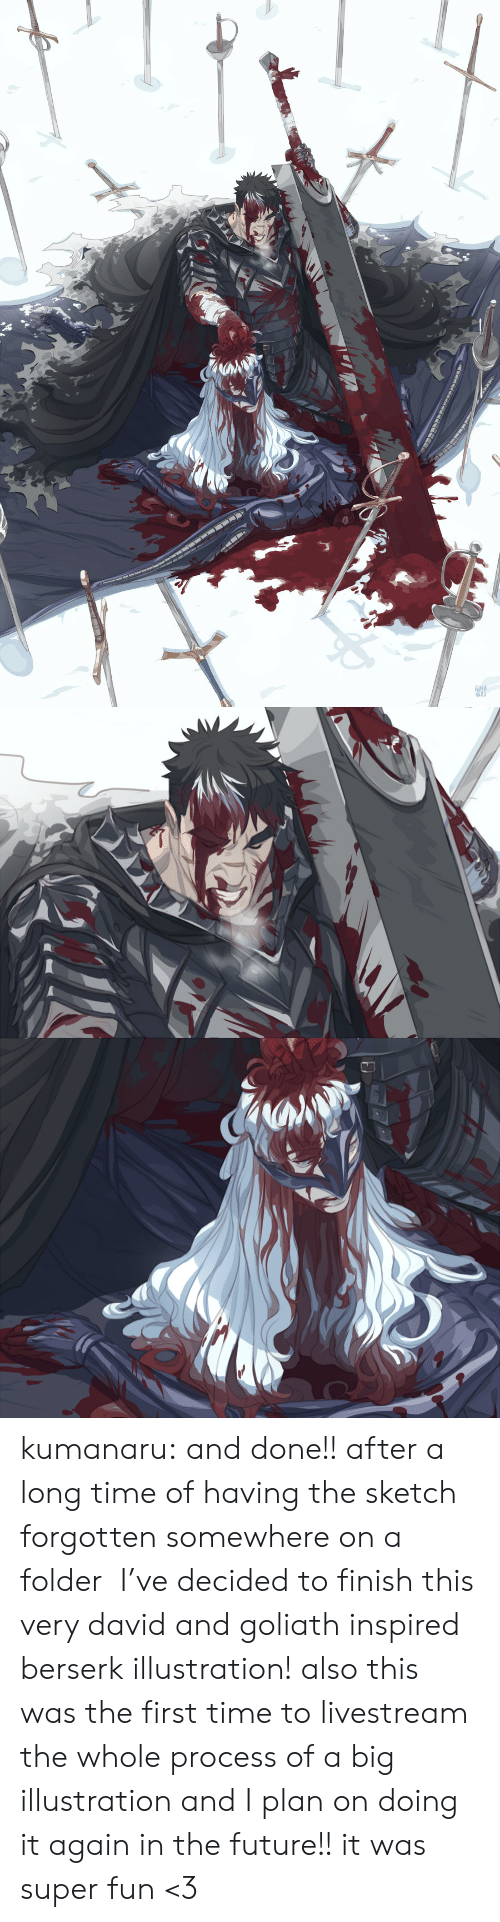 Future, Tumblr, and Blog: KUMA  NAKU kumanaru:  and done!! after a long time of having the sketch forgotten somewhere on a folder  I've decided to finish this very david and goliath inspired berserk illustration!  also this was the first time to livestream the whole process of a big illustration and I plan on doing it again in the future!! it was super fun <3